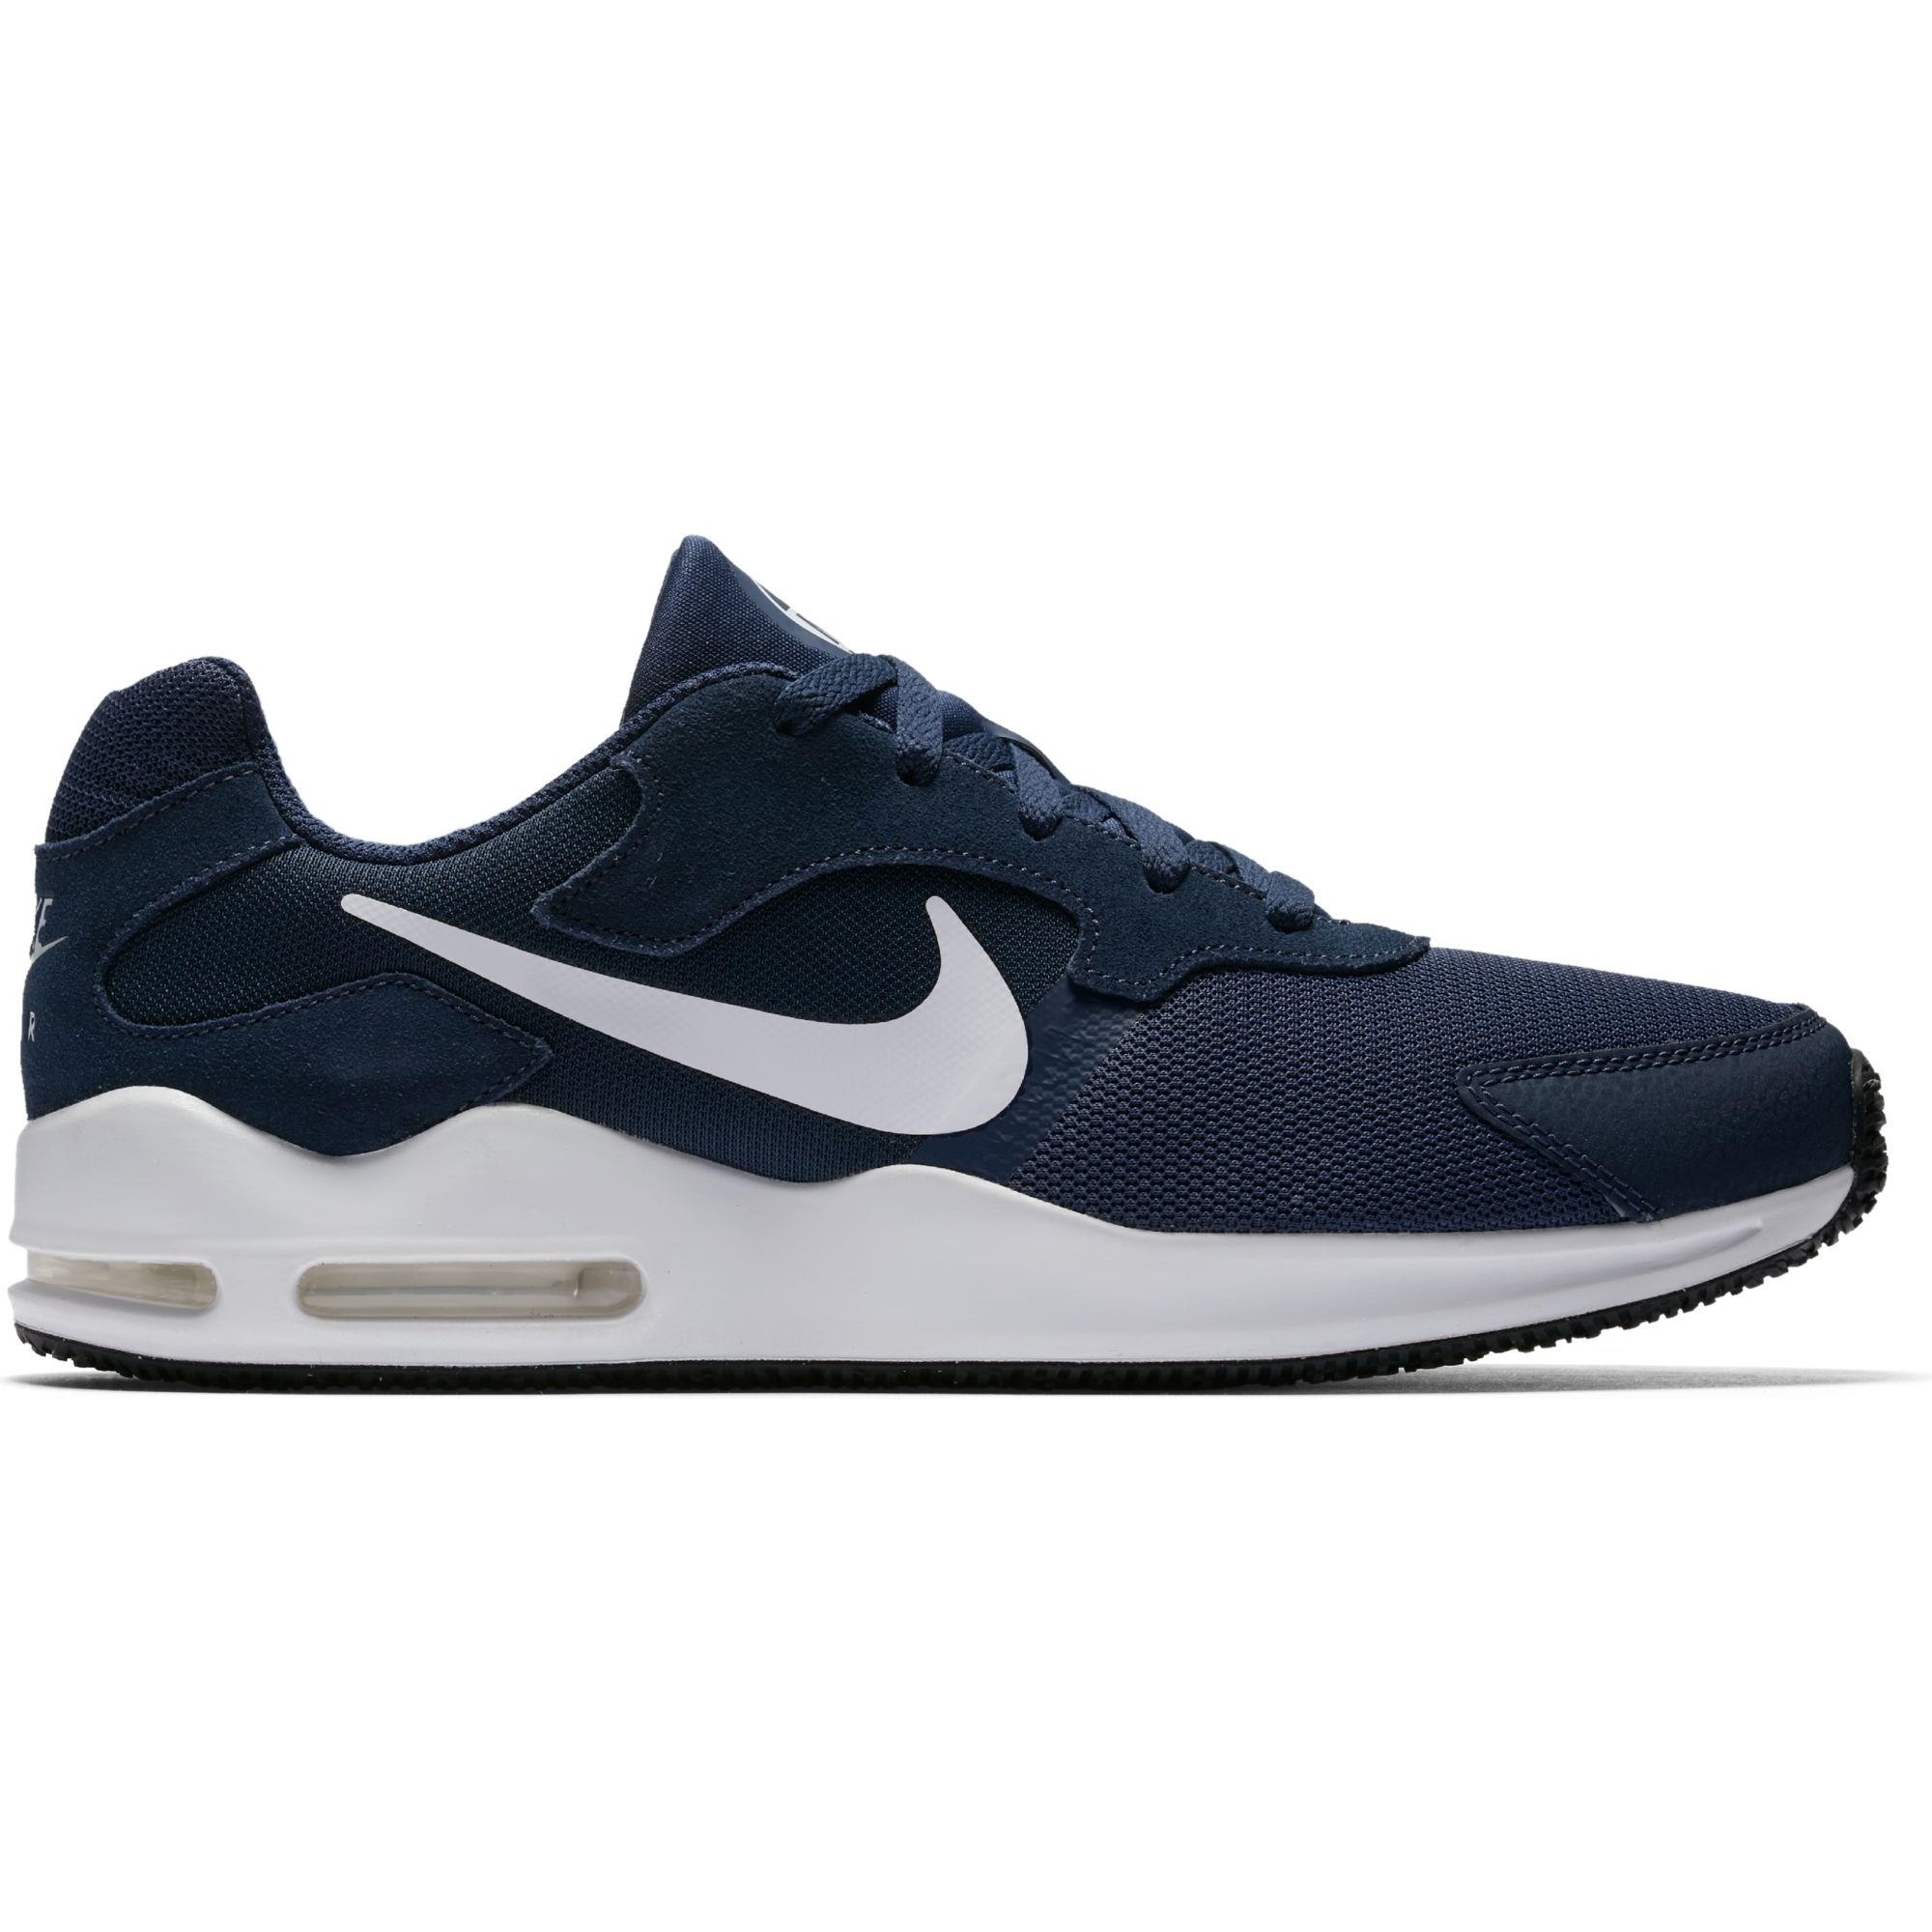 Image of Air Max Guille